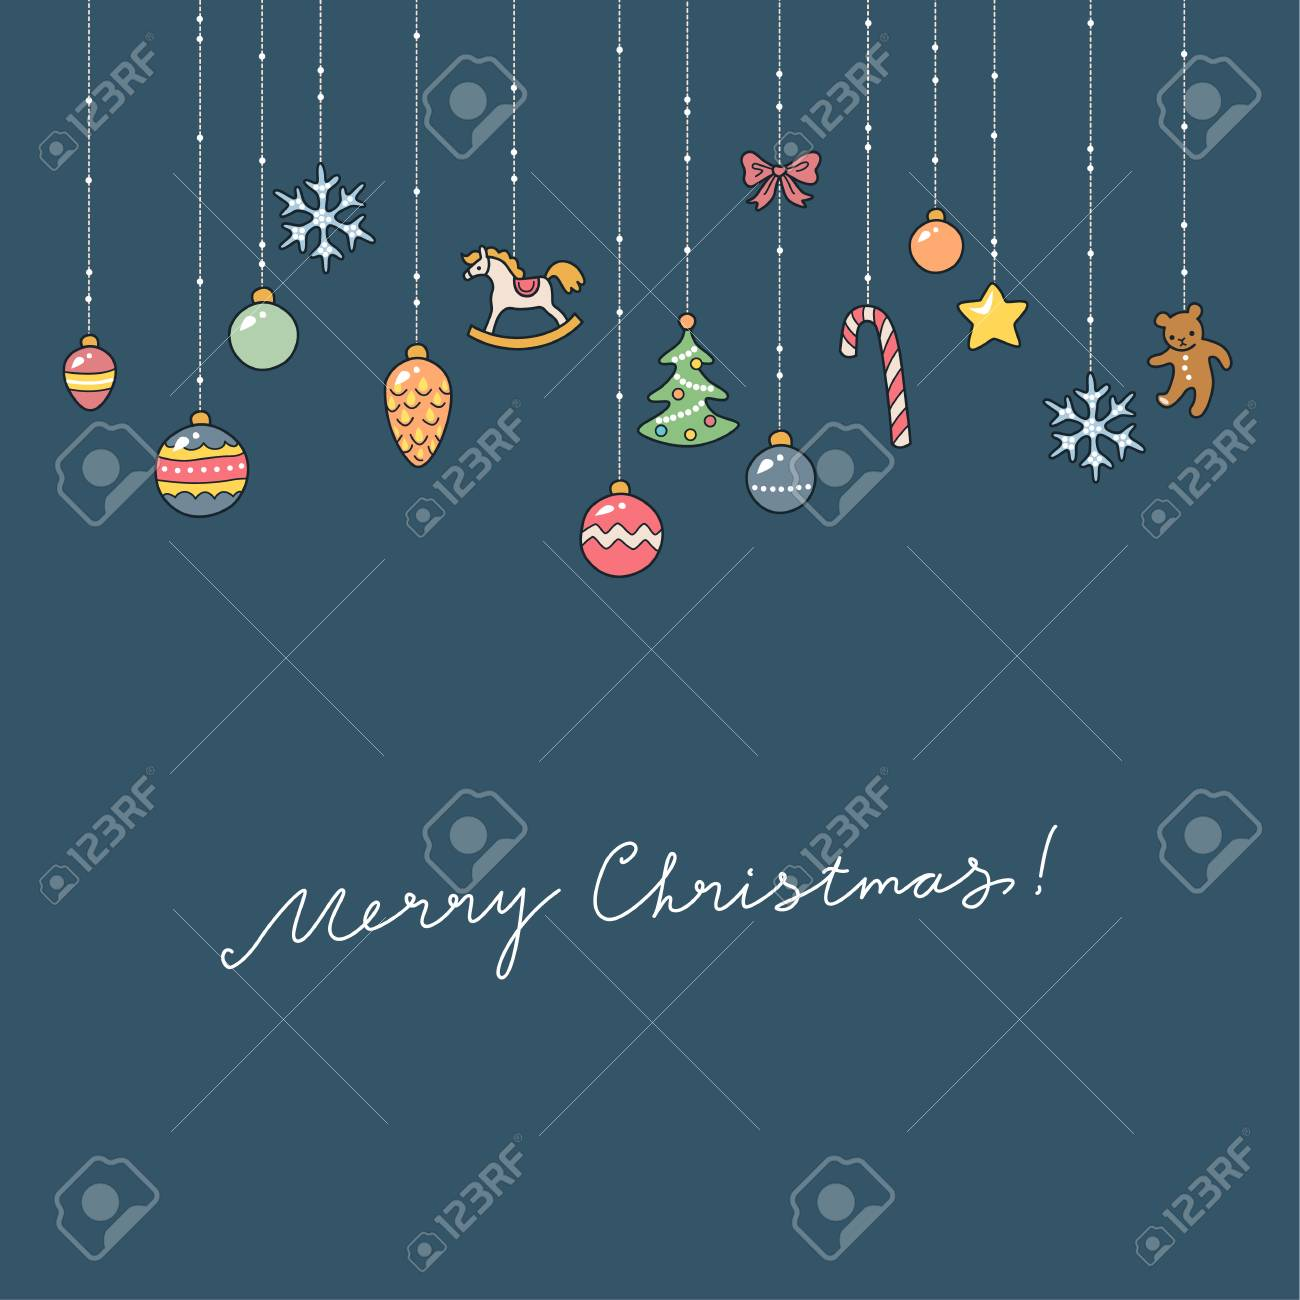 christmas greeting card cute christmas decorations on blue background royalty free cliparts vectors and stock illustration image 46579180 christmas greeting card cute christmas decorations on blue background